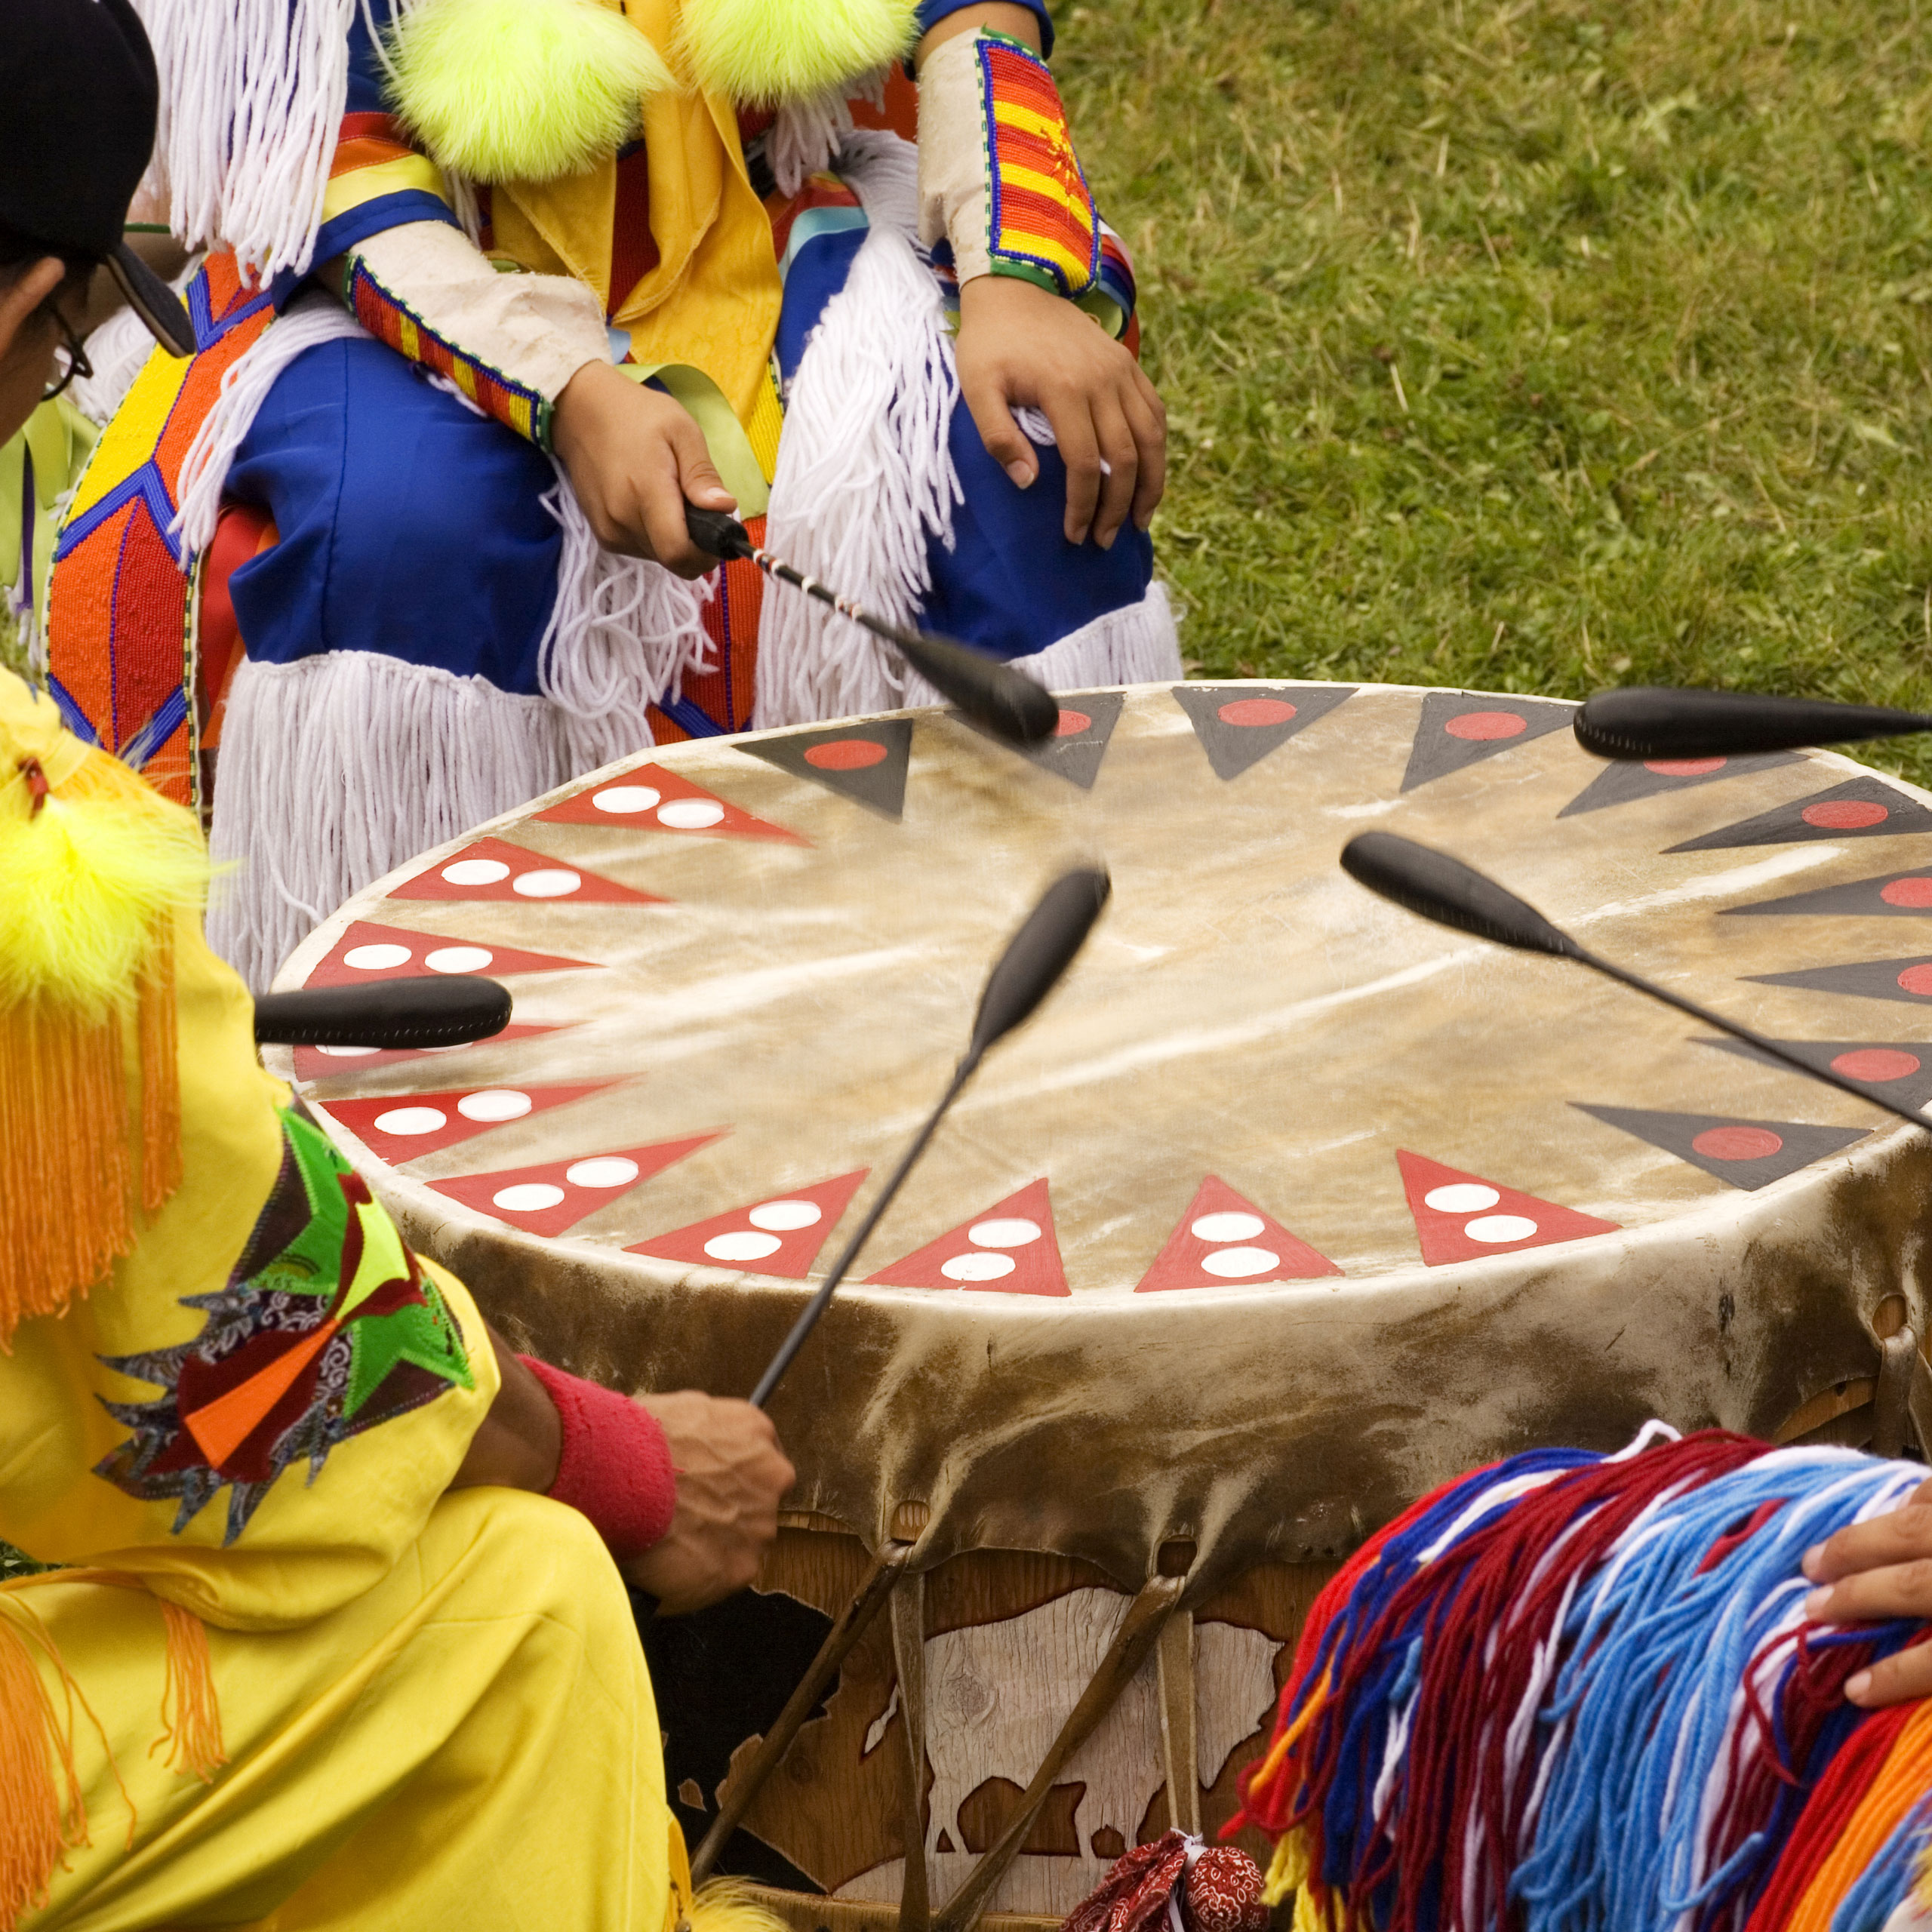 Discover Native American heritage and culture at one of several June events including the 2nd Annual Cultural Demonstration Series June 17 – 18 at the Grand Canyon South Rim - Desert View Watchtower.